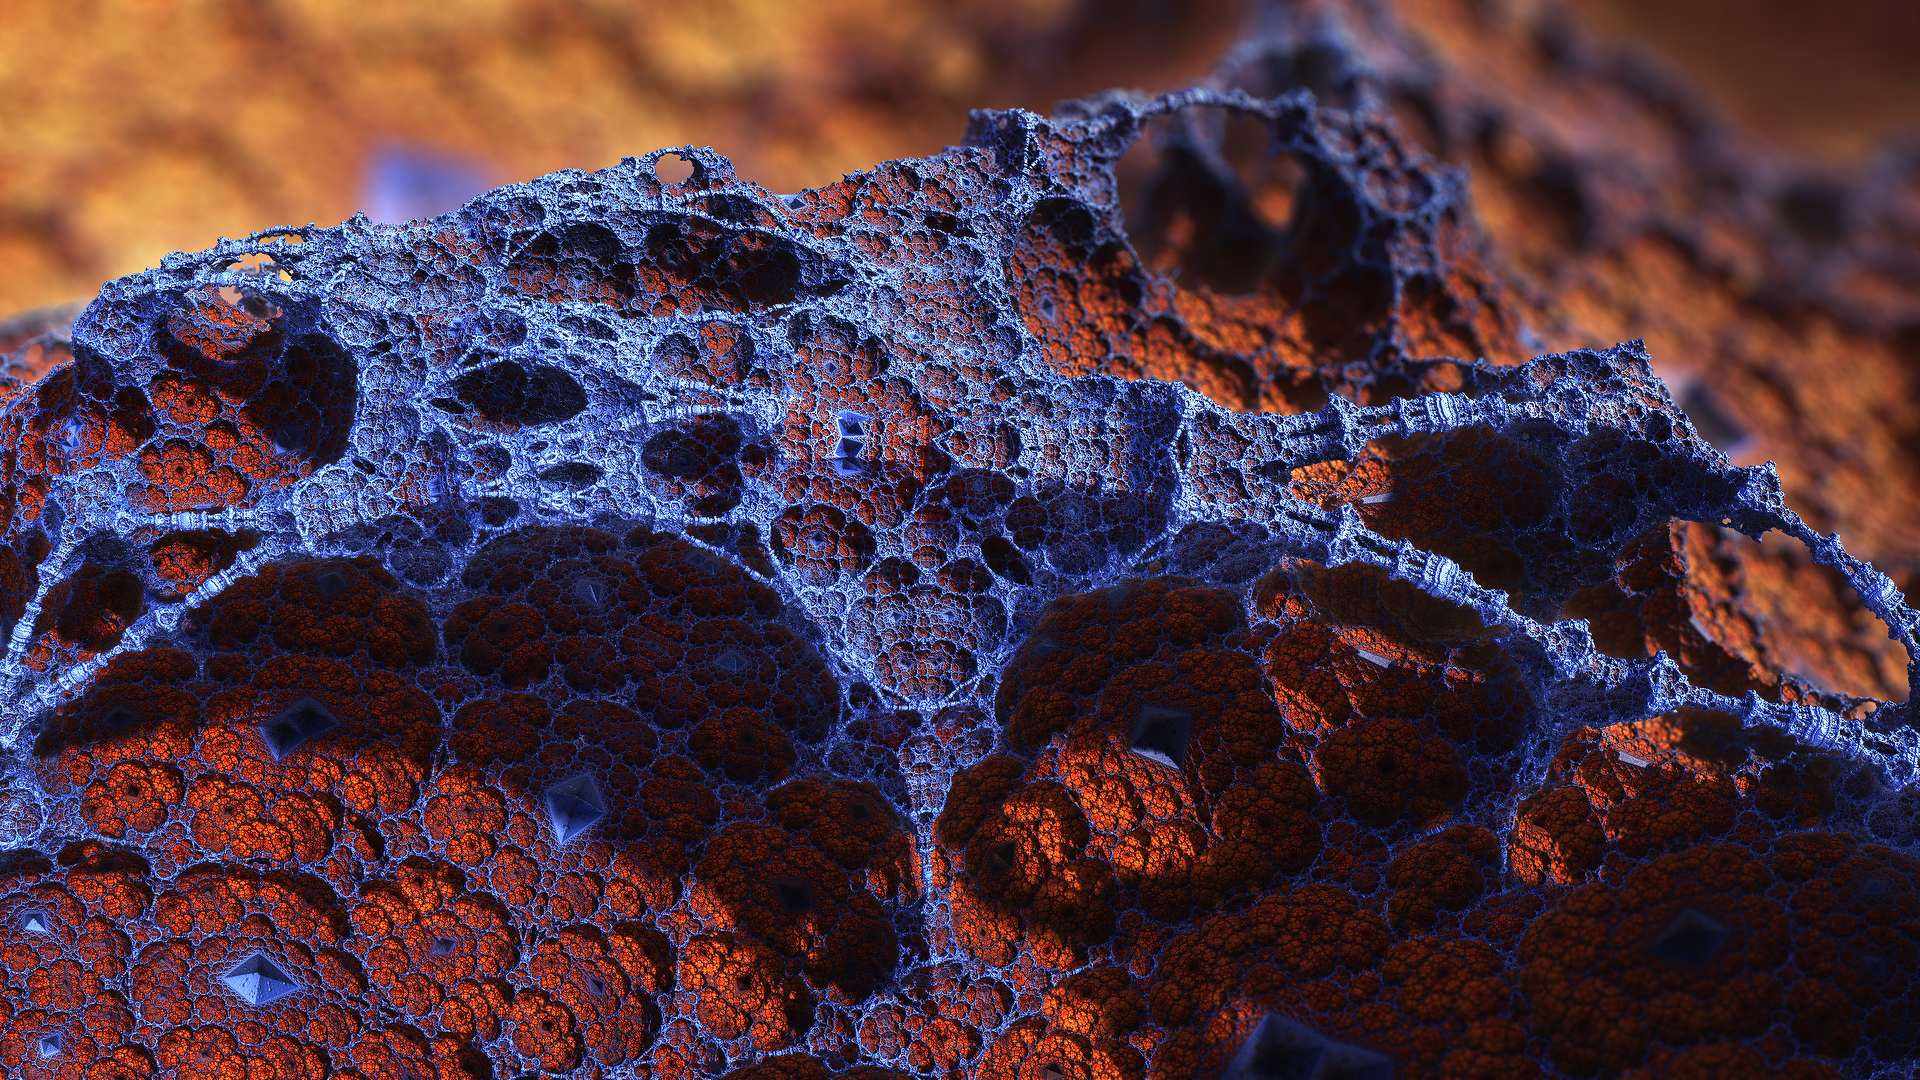 3d Fractal Wallpapers High Definition with HD Wallpaper Resolution 1920x1080